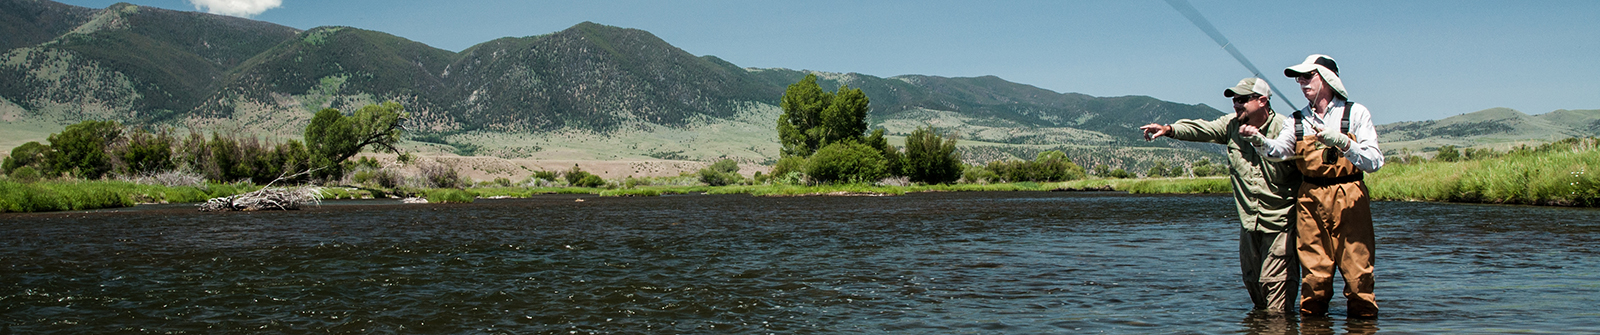 Guided montana fly fishing trips fins feathers of bozeman for Montana fishing trips